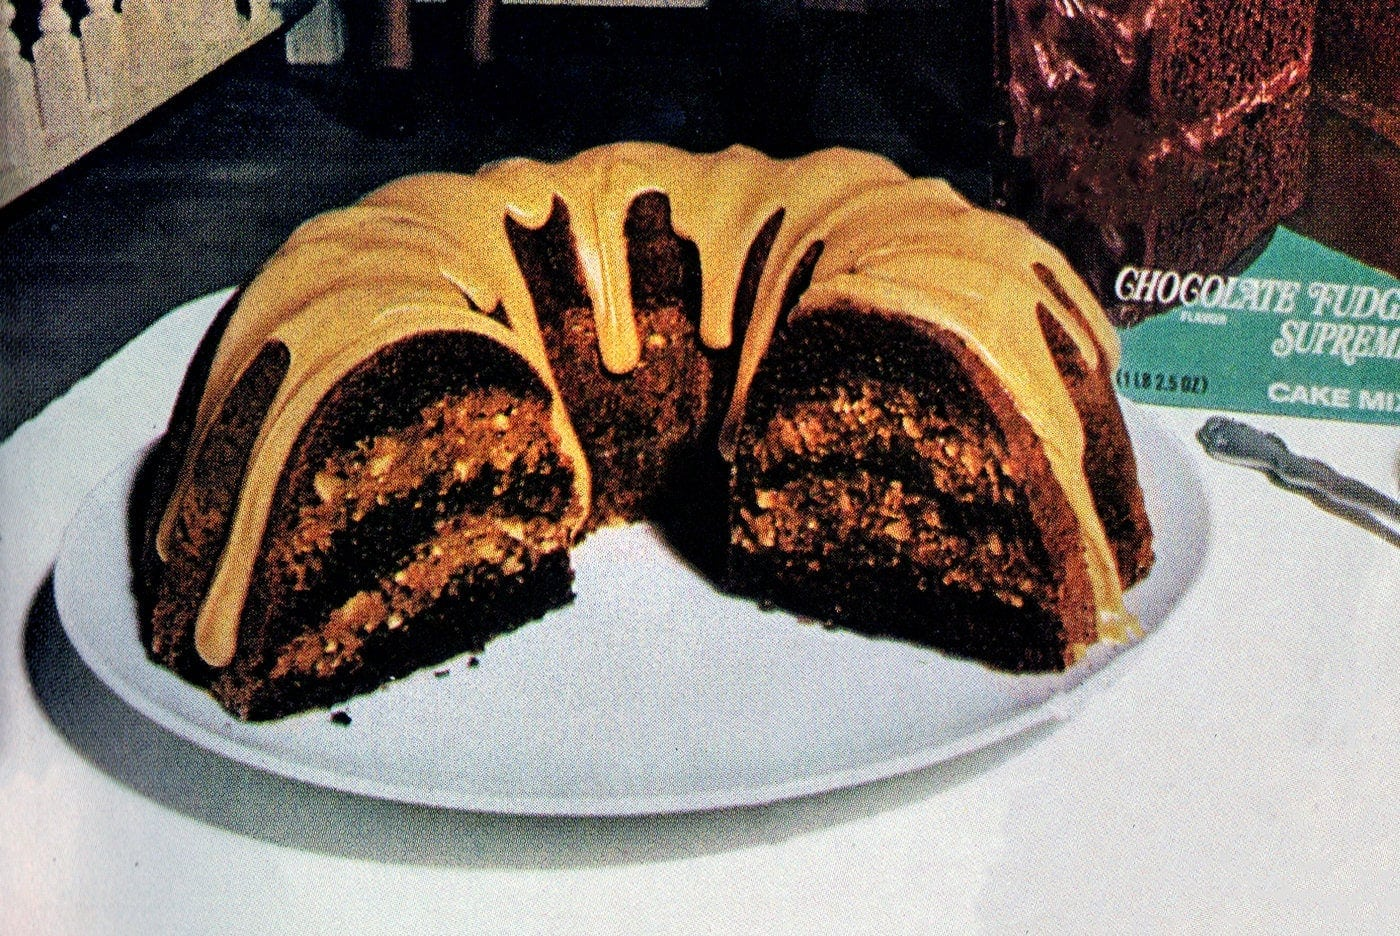 Fudgy-nut Bundt cake with caramel glaze recipe (1974)-003